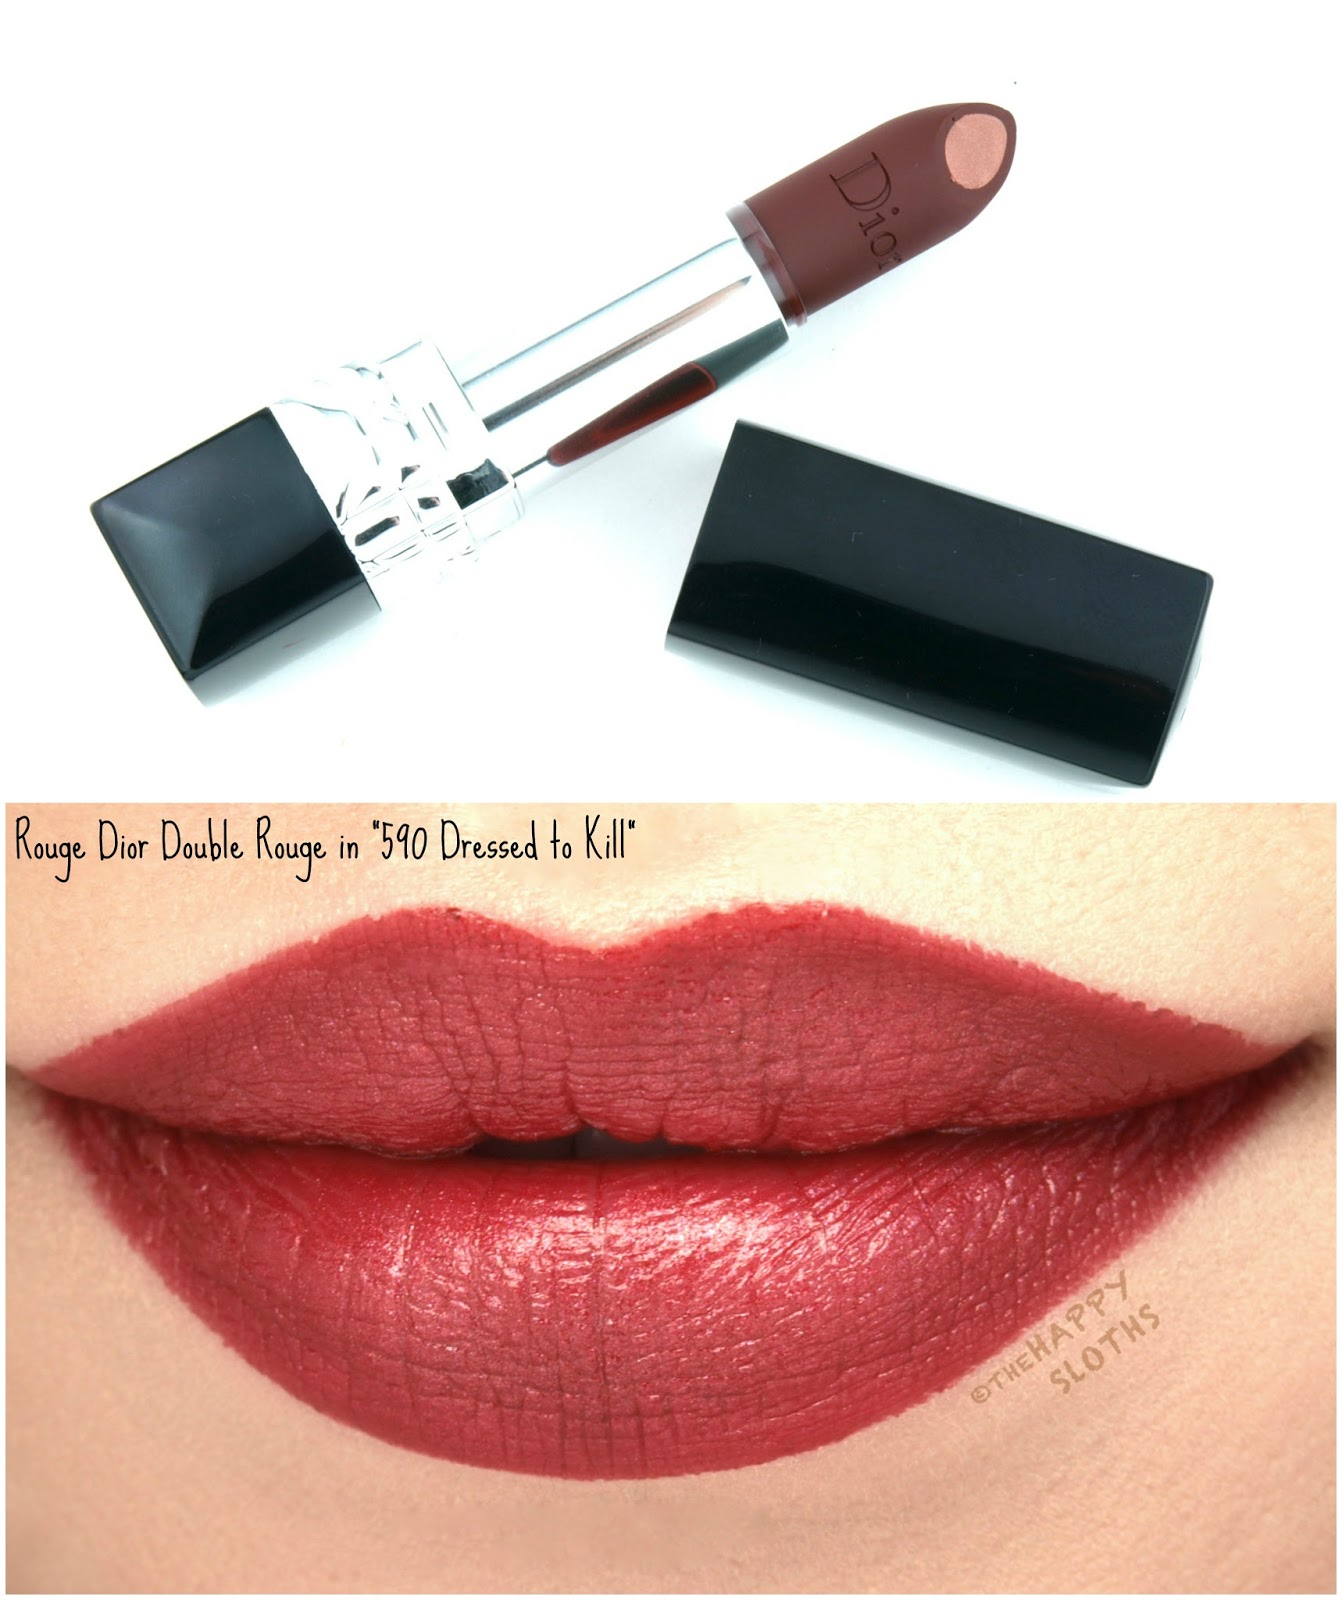 "Dior Rouge Dior Double Rouge Lipstick in ""590 Dressed to Kill"": Review and Swatches"